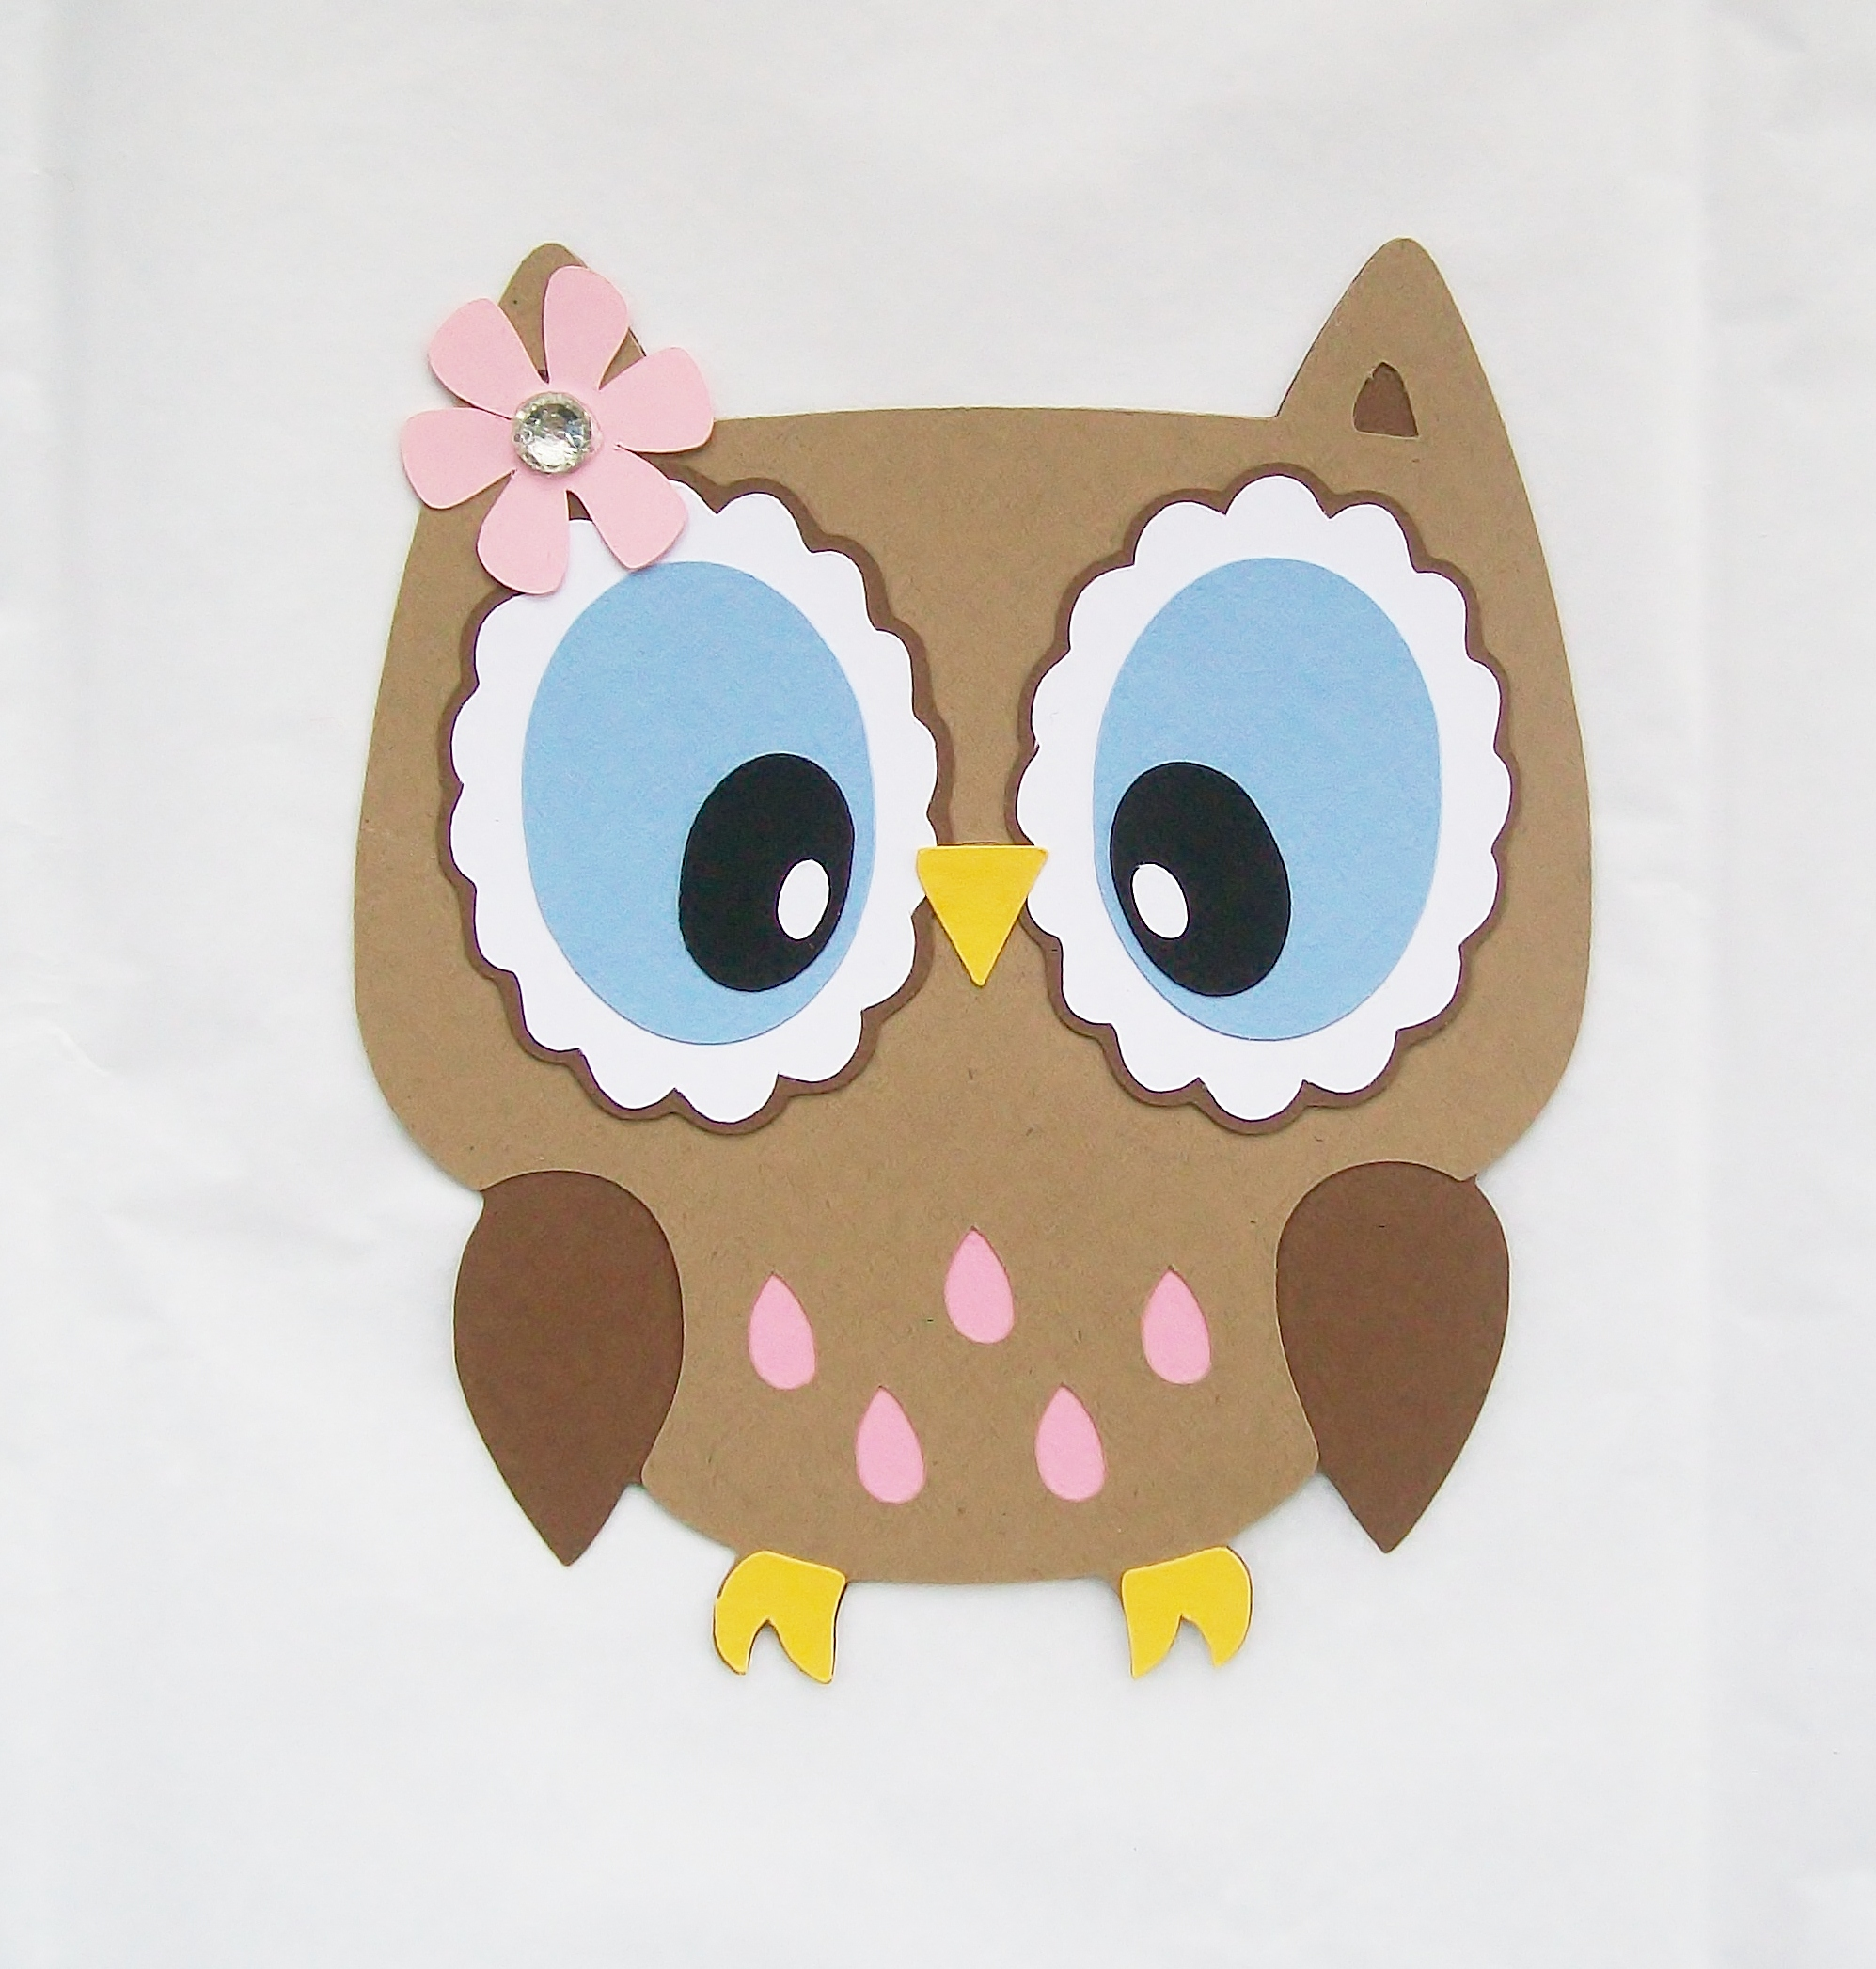 merchandise have it decor home garden buy should and every lover stuff for owl the items